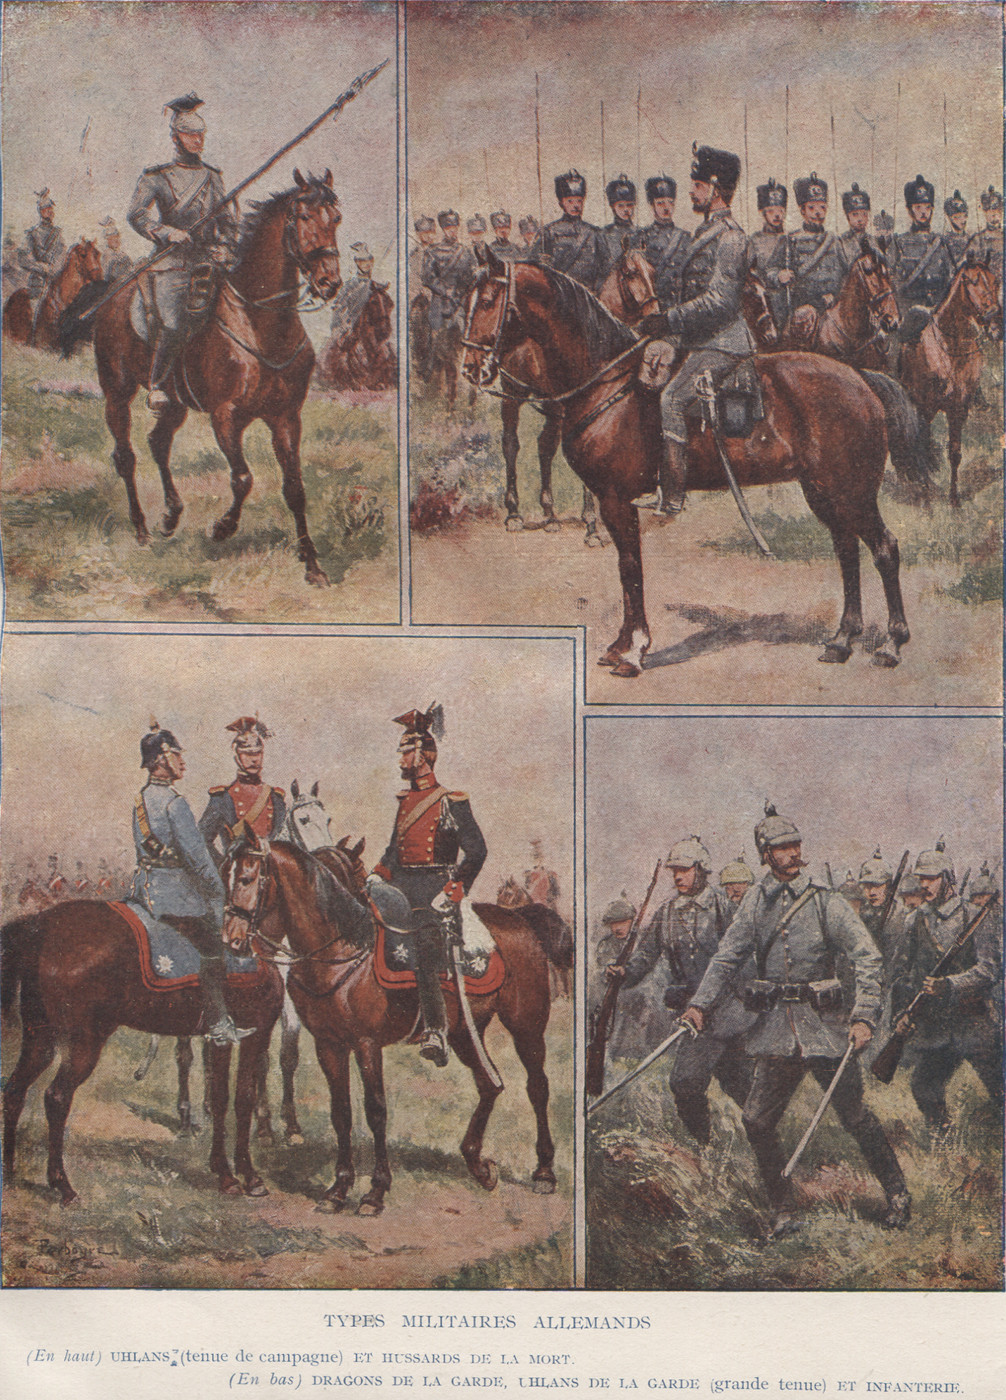 Types militaires allemands